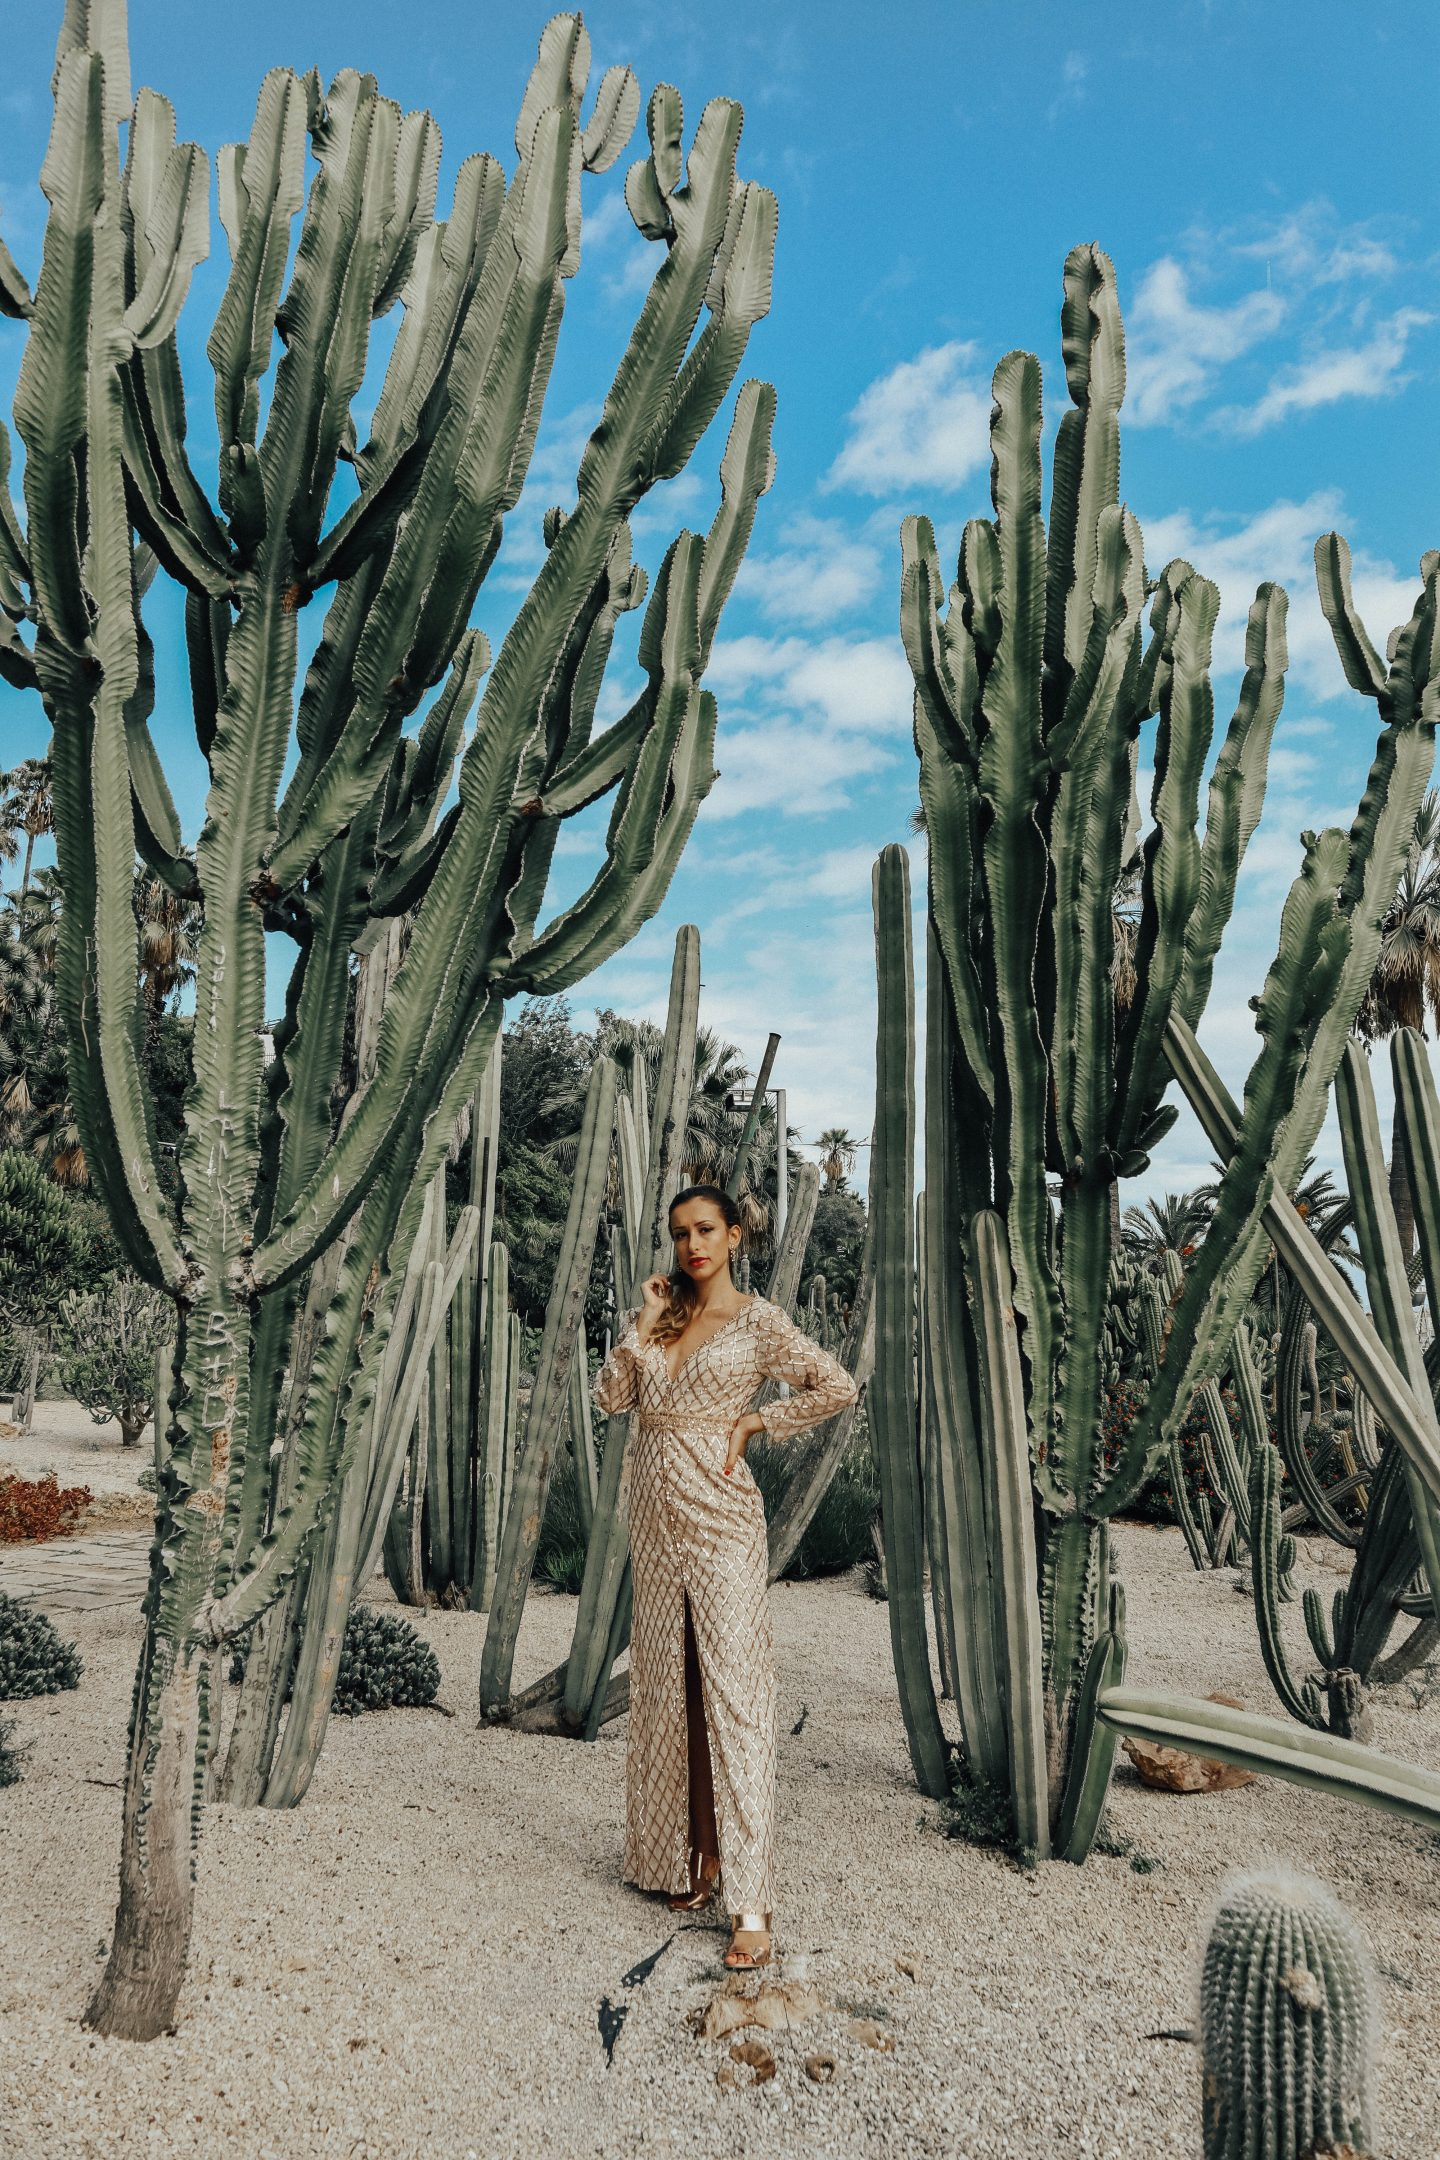 Dream Dresses in a Cactus Paradise